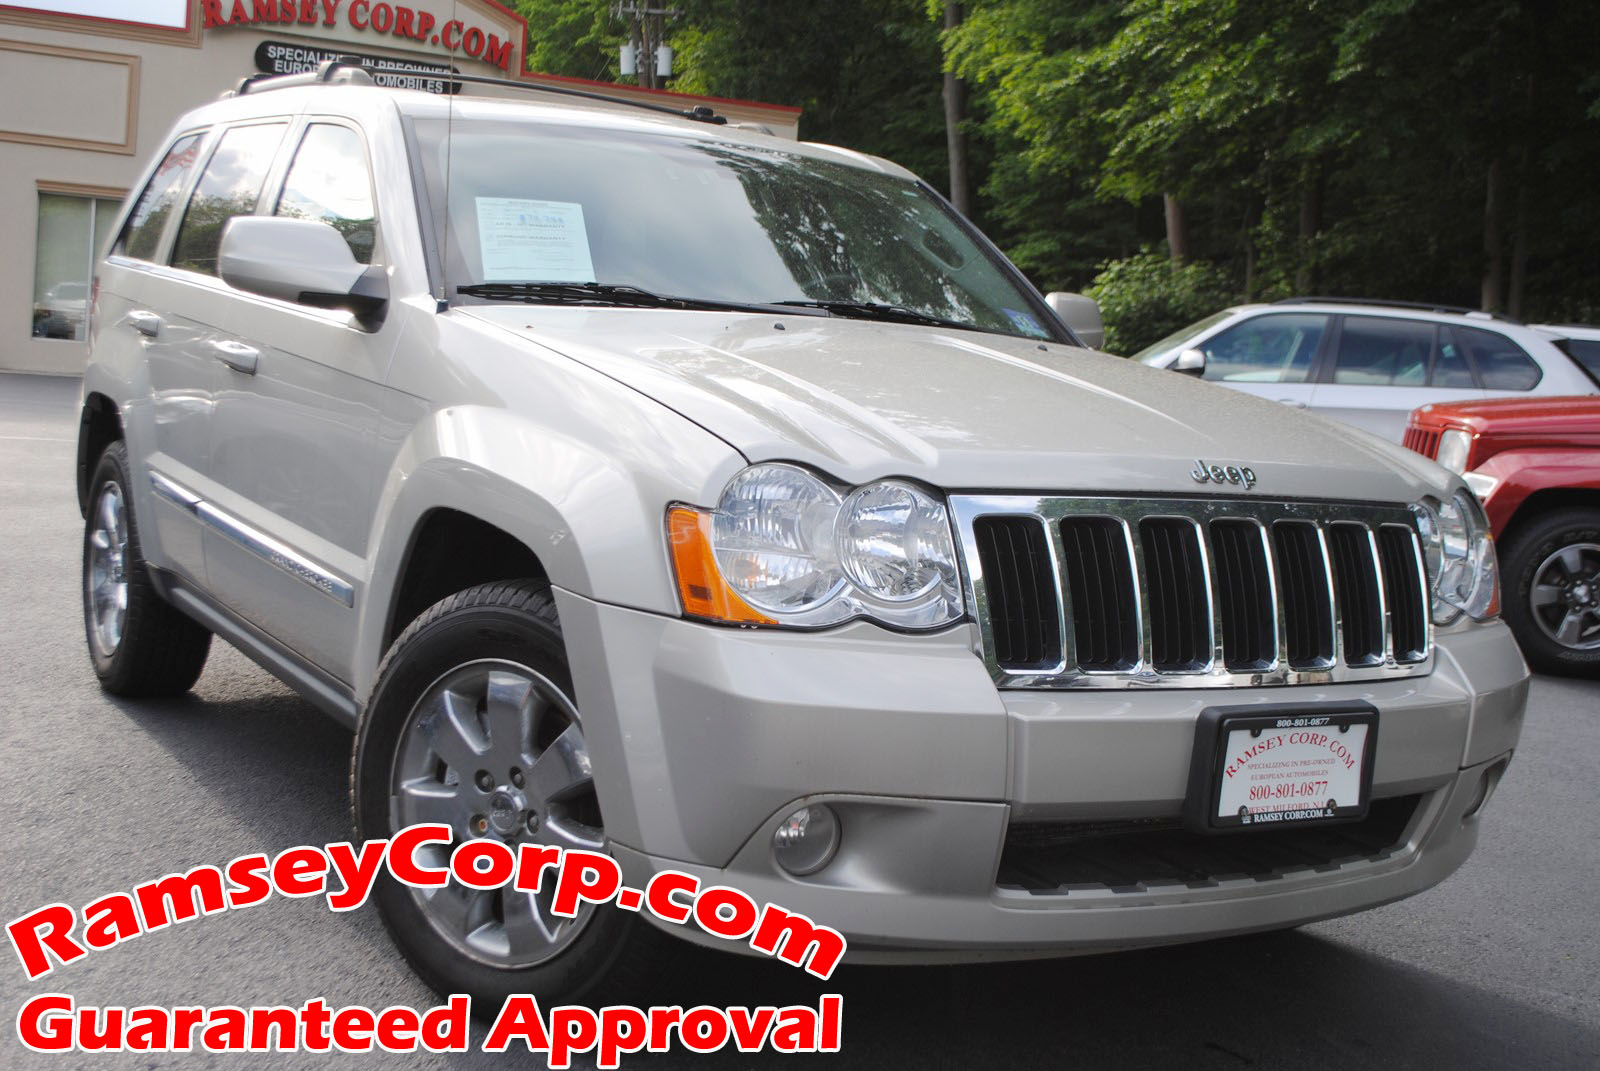 Amazing 2009 Jeep Grand Cherokee Limited 3.7 SUV